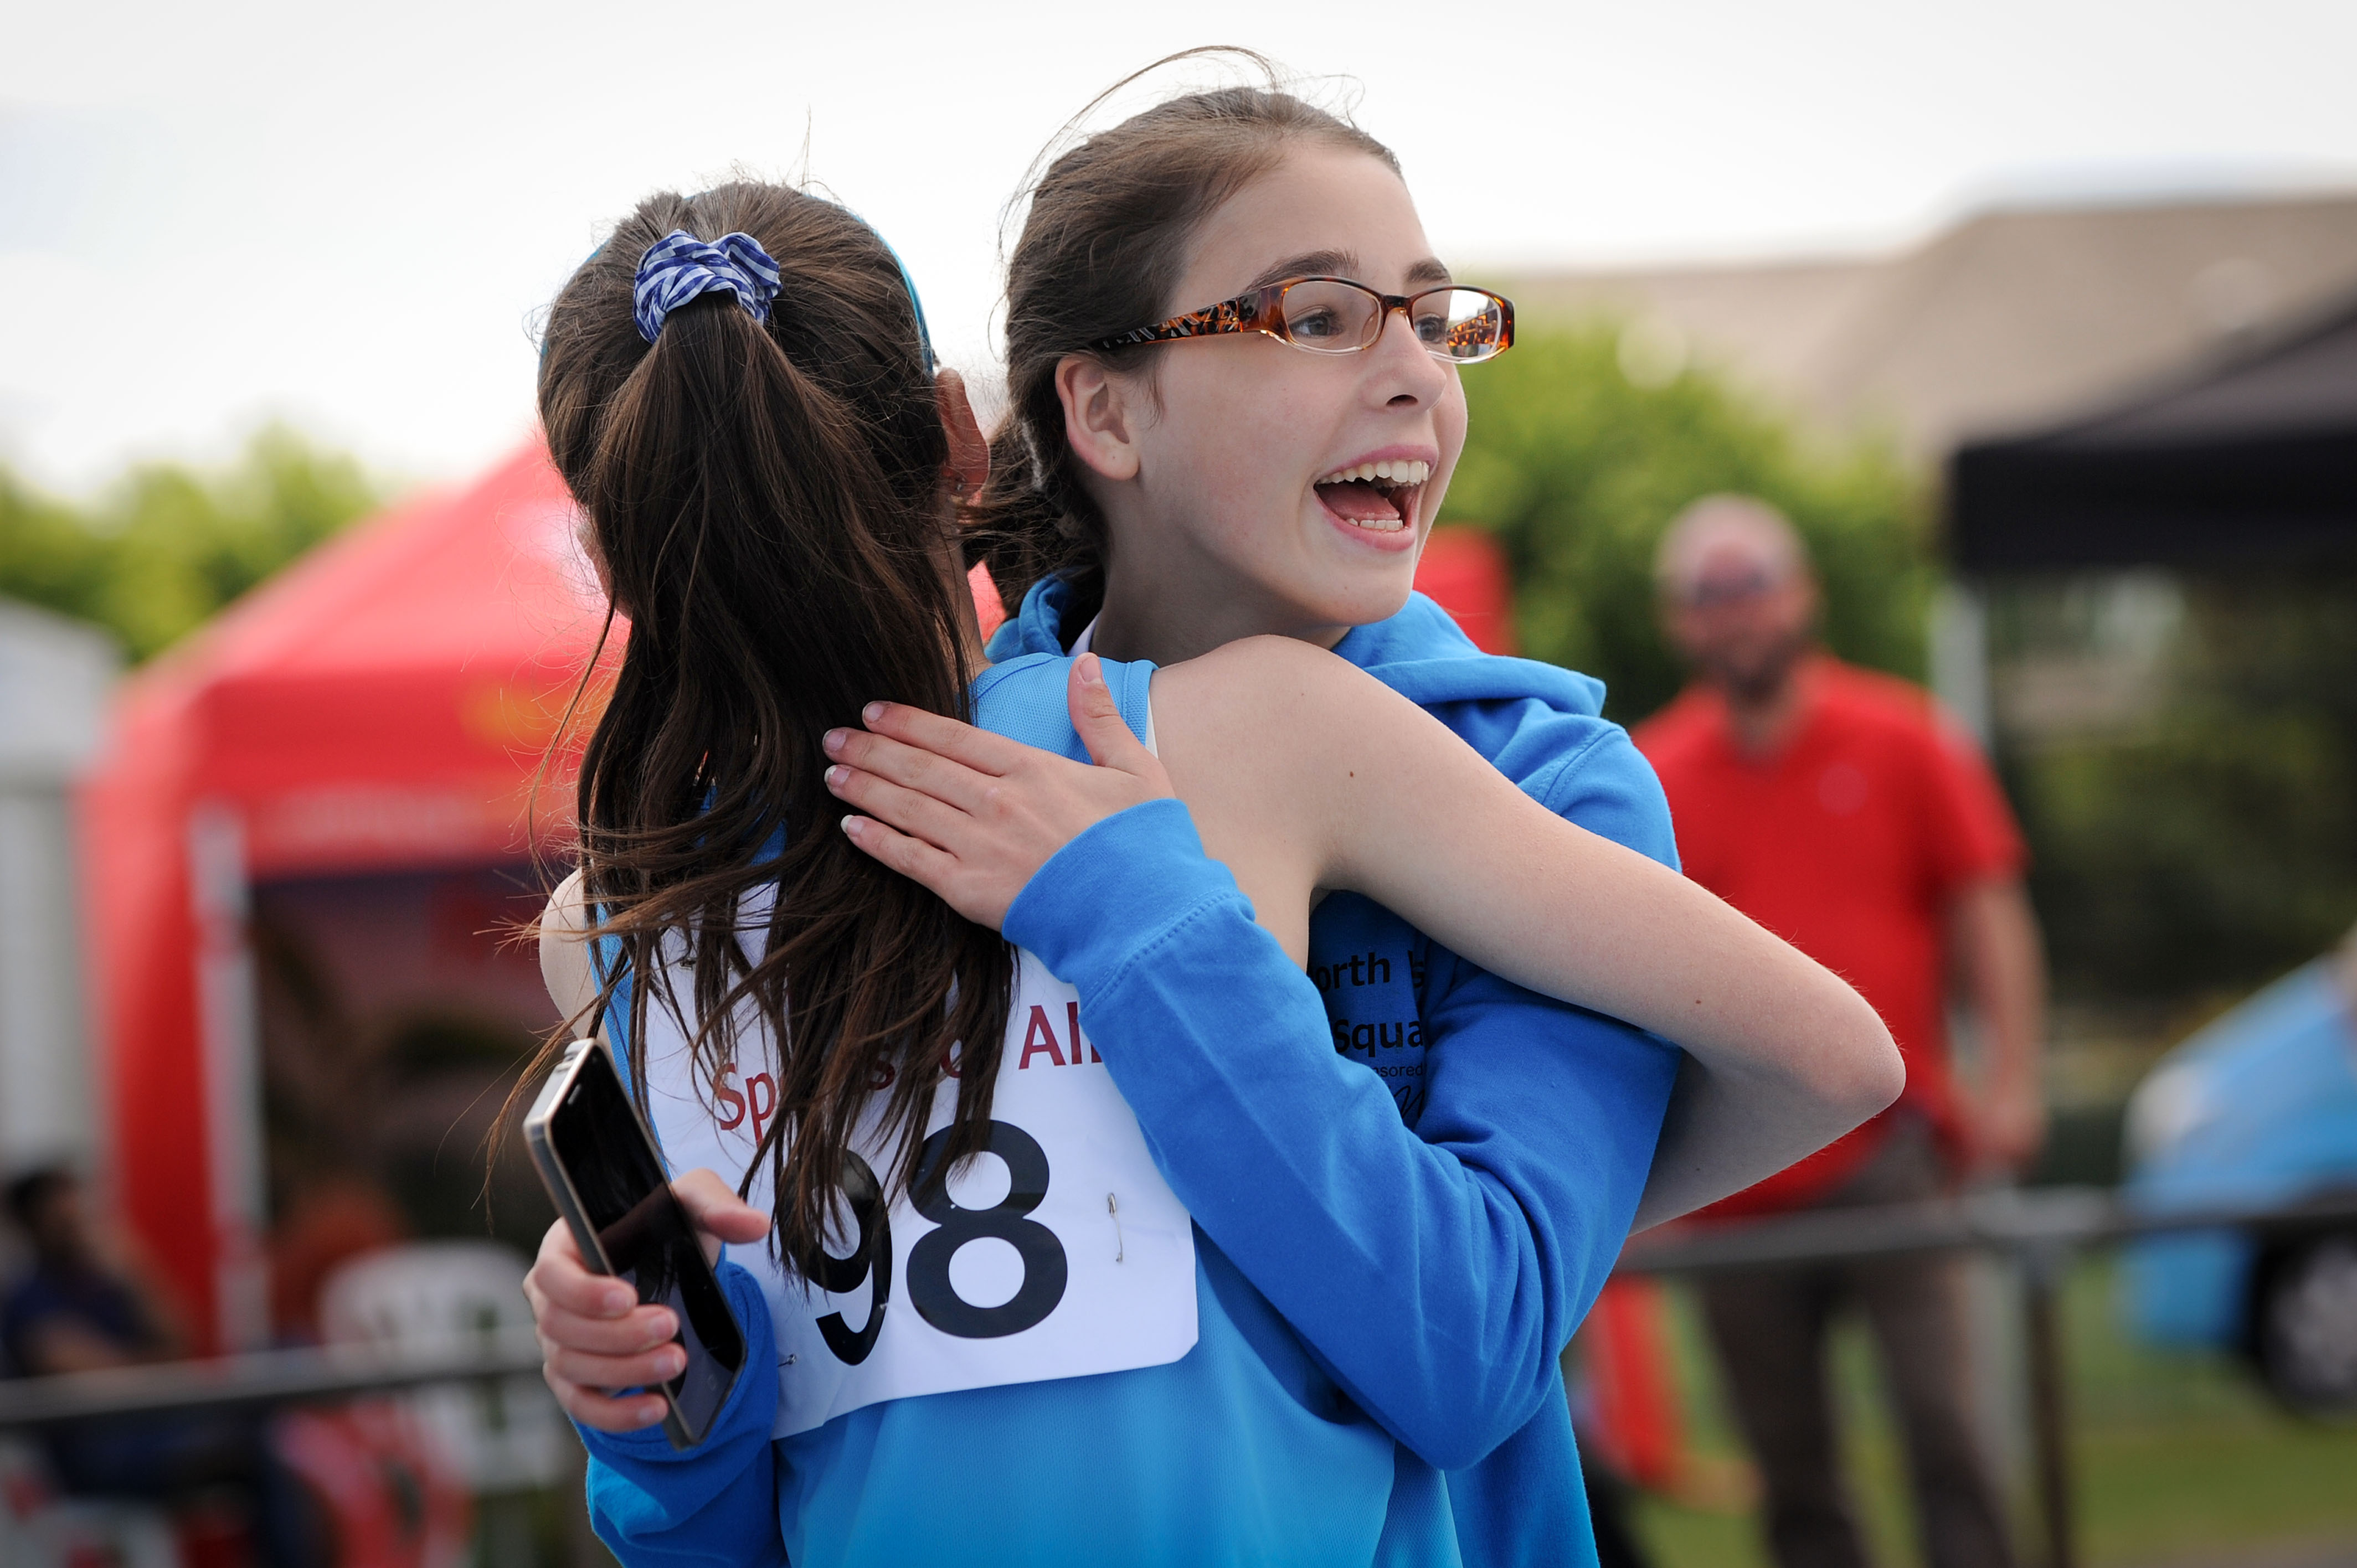 Two girl athletes hug after a race